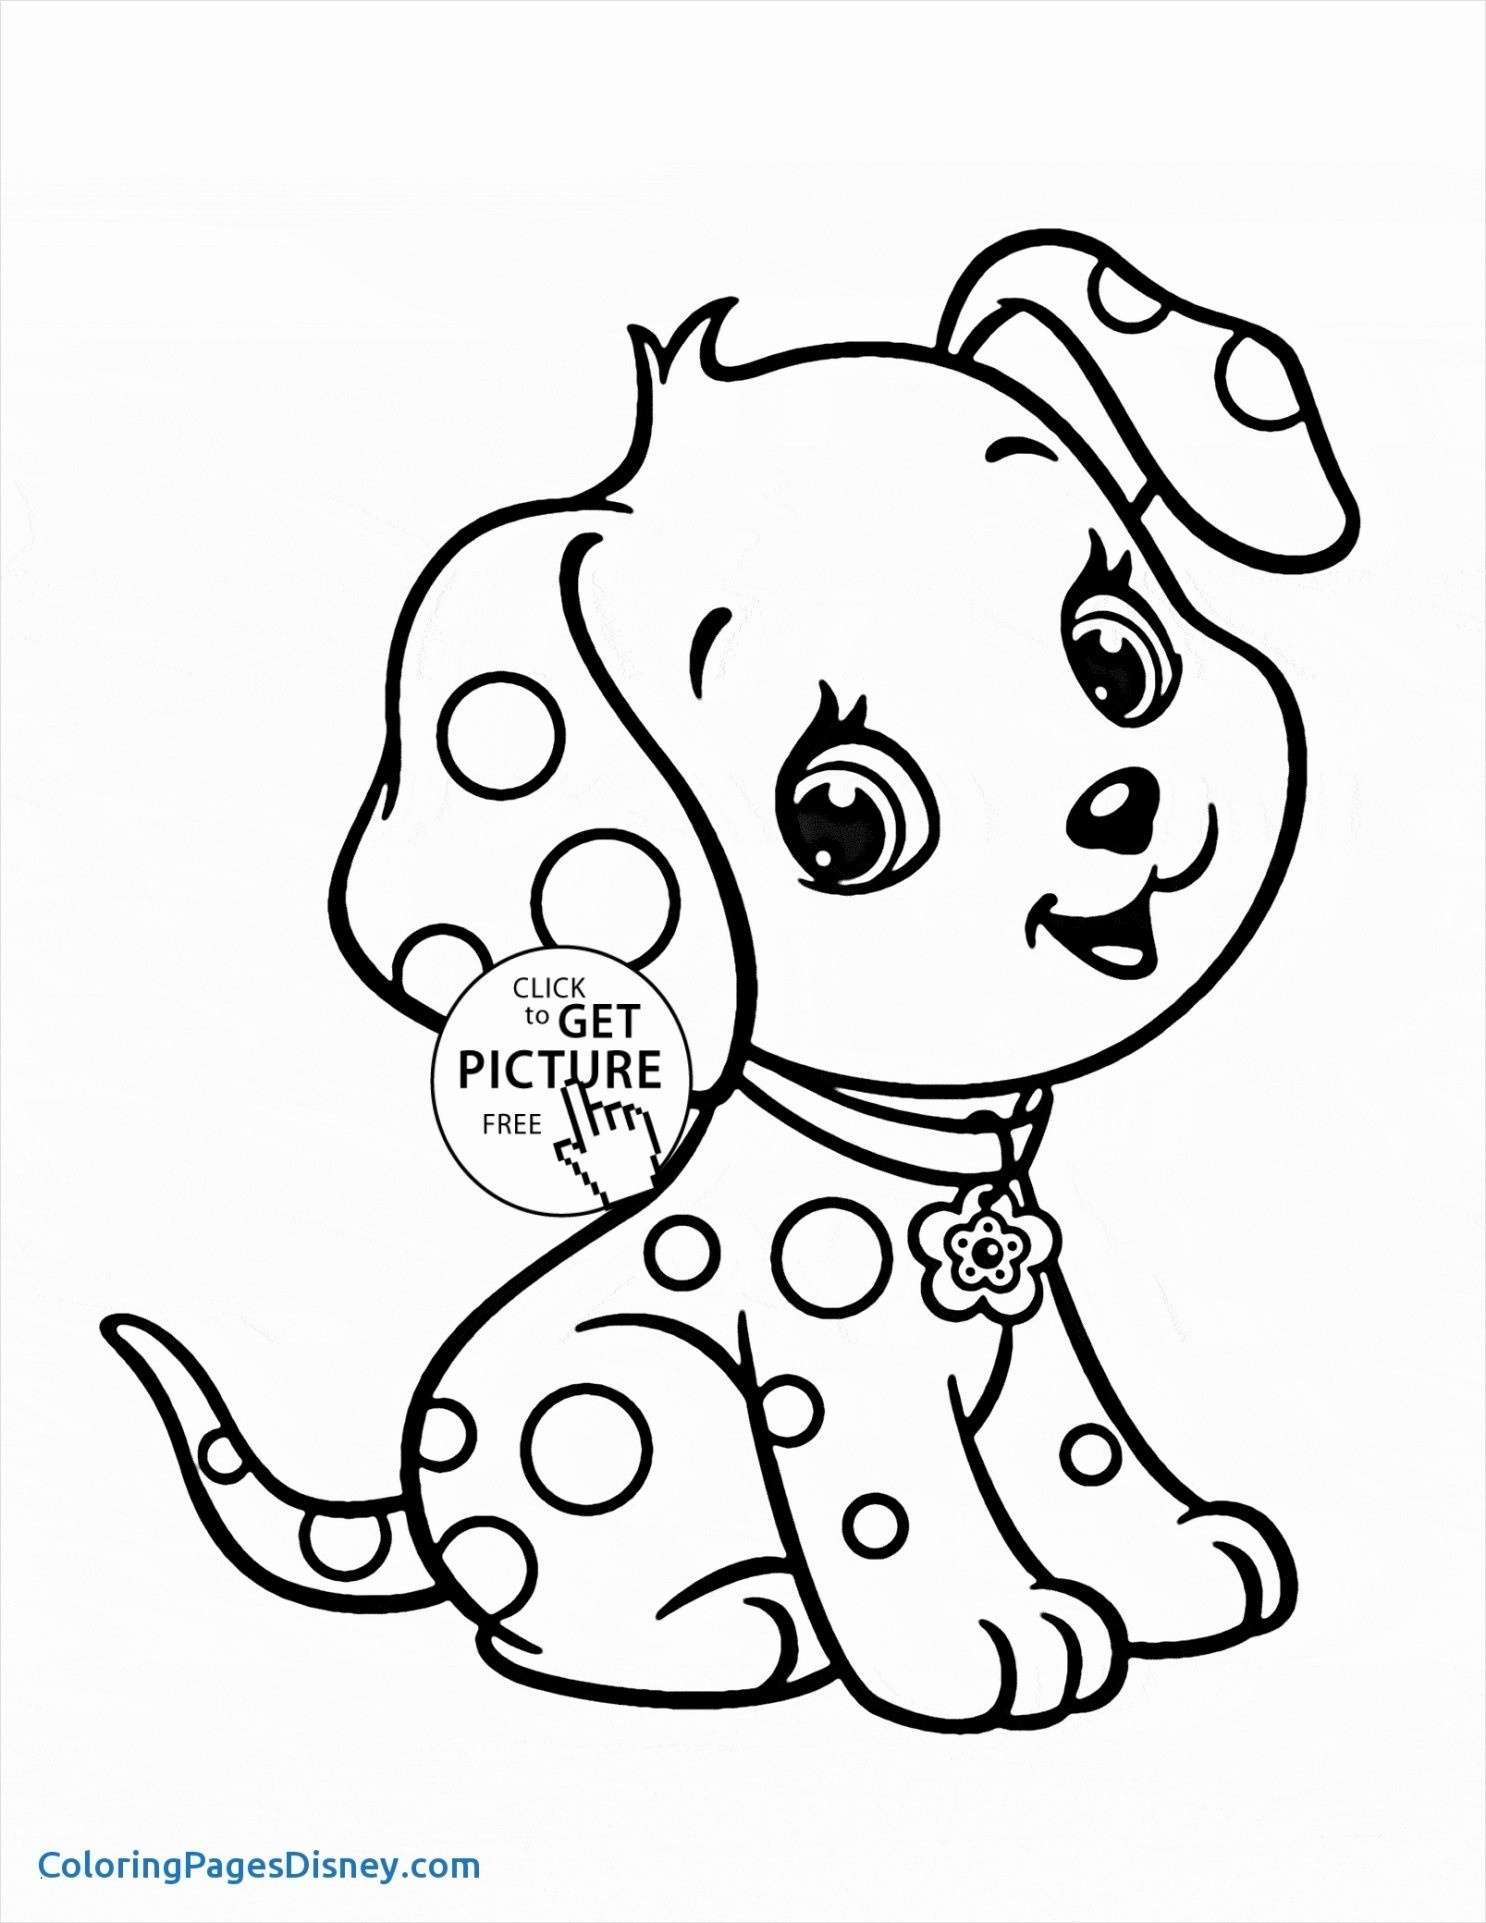 Coloring Page ~ Page1 1240Px Butterfly Coloring Pages Printable - Free Printable Coloring Books Pdf